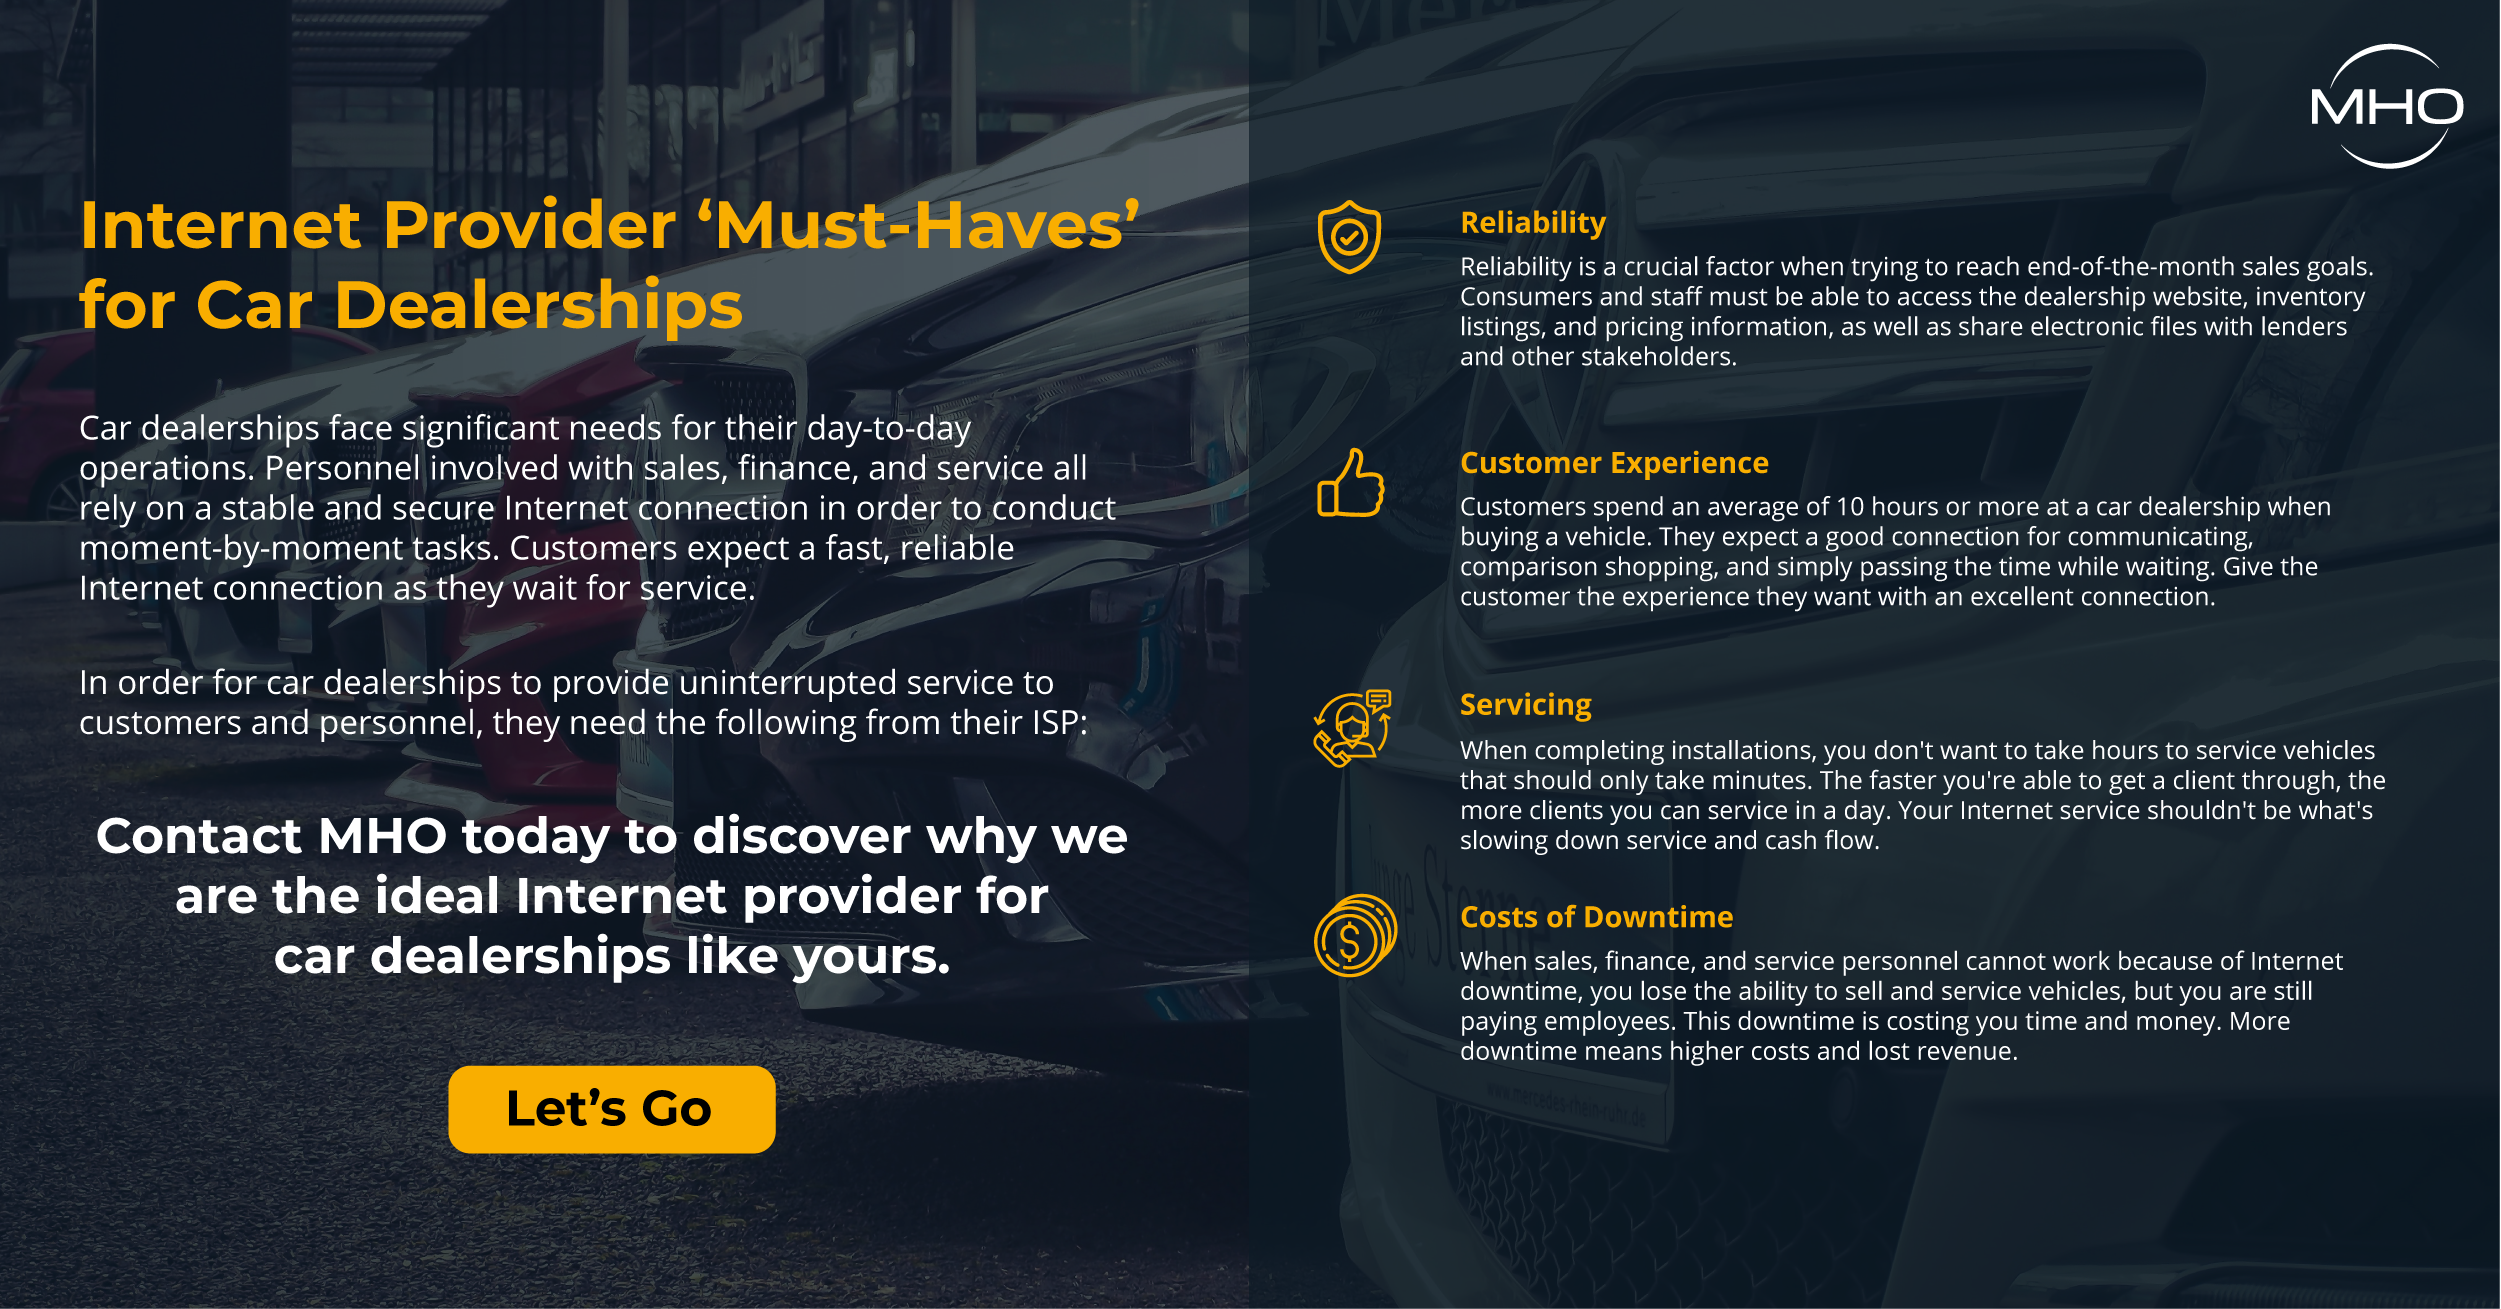 MHO-Automobile Dealership Infographic